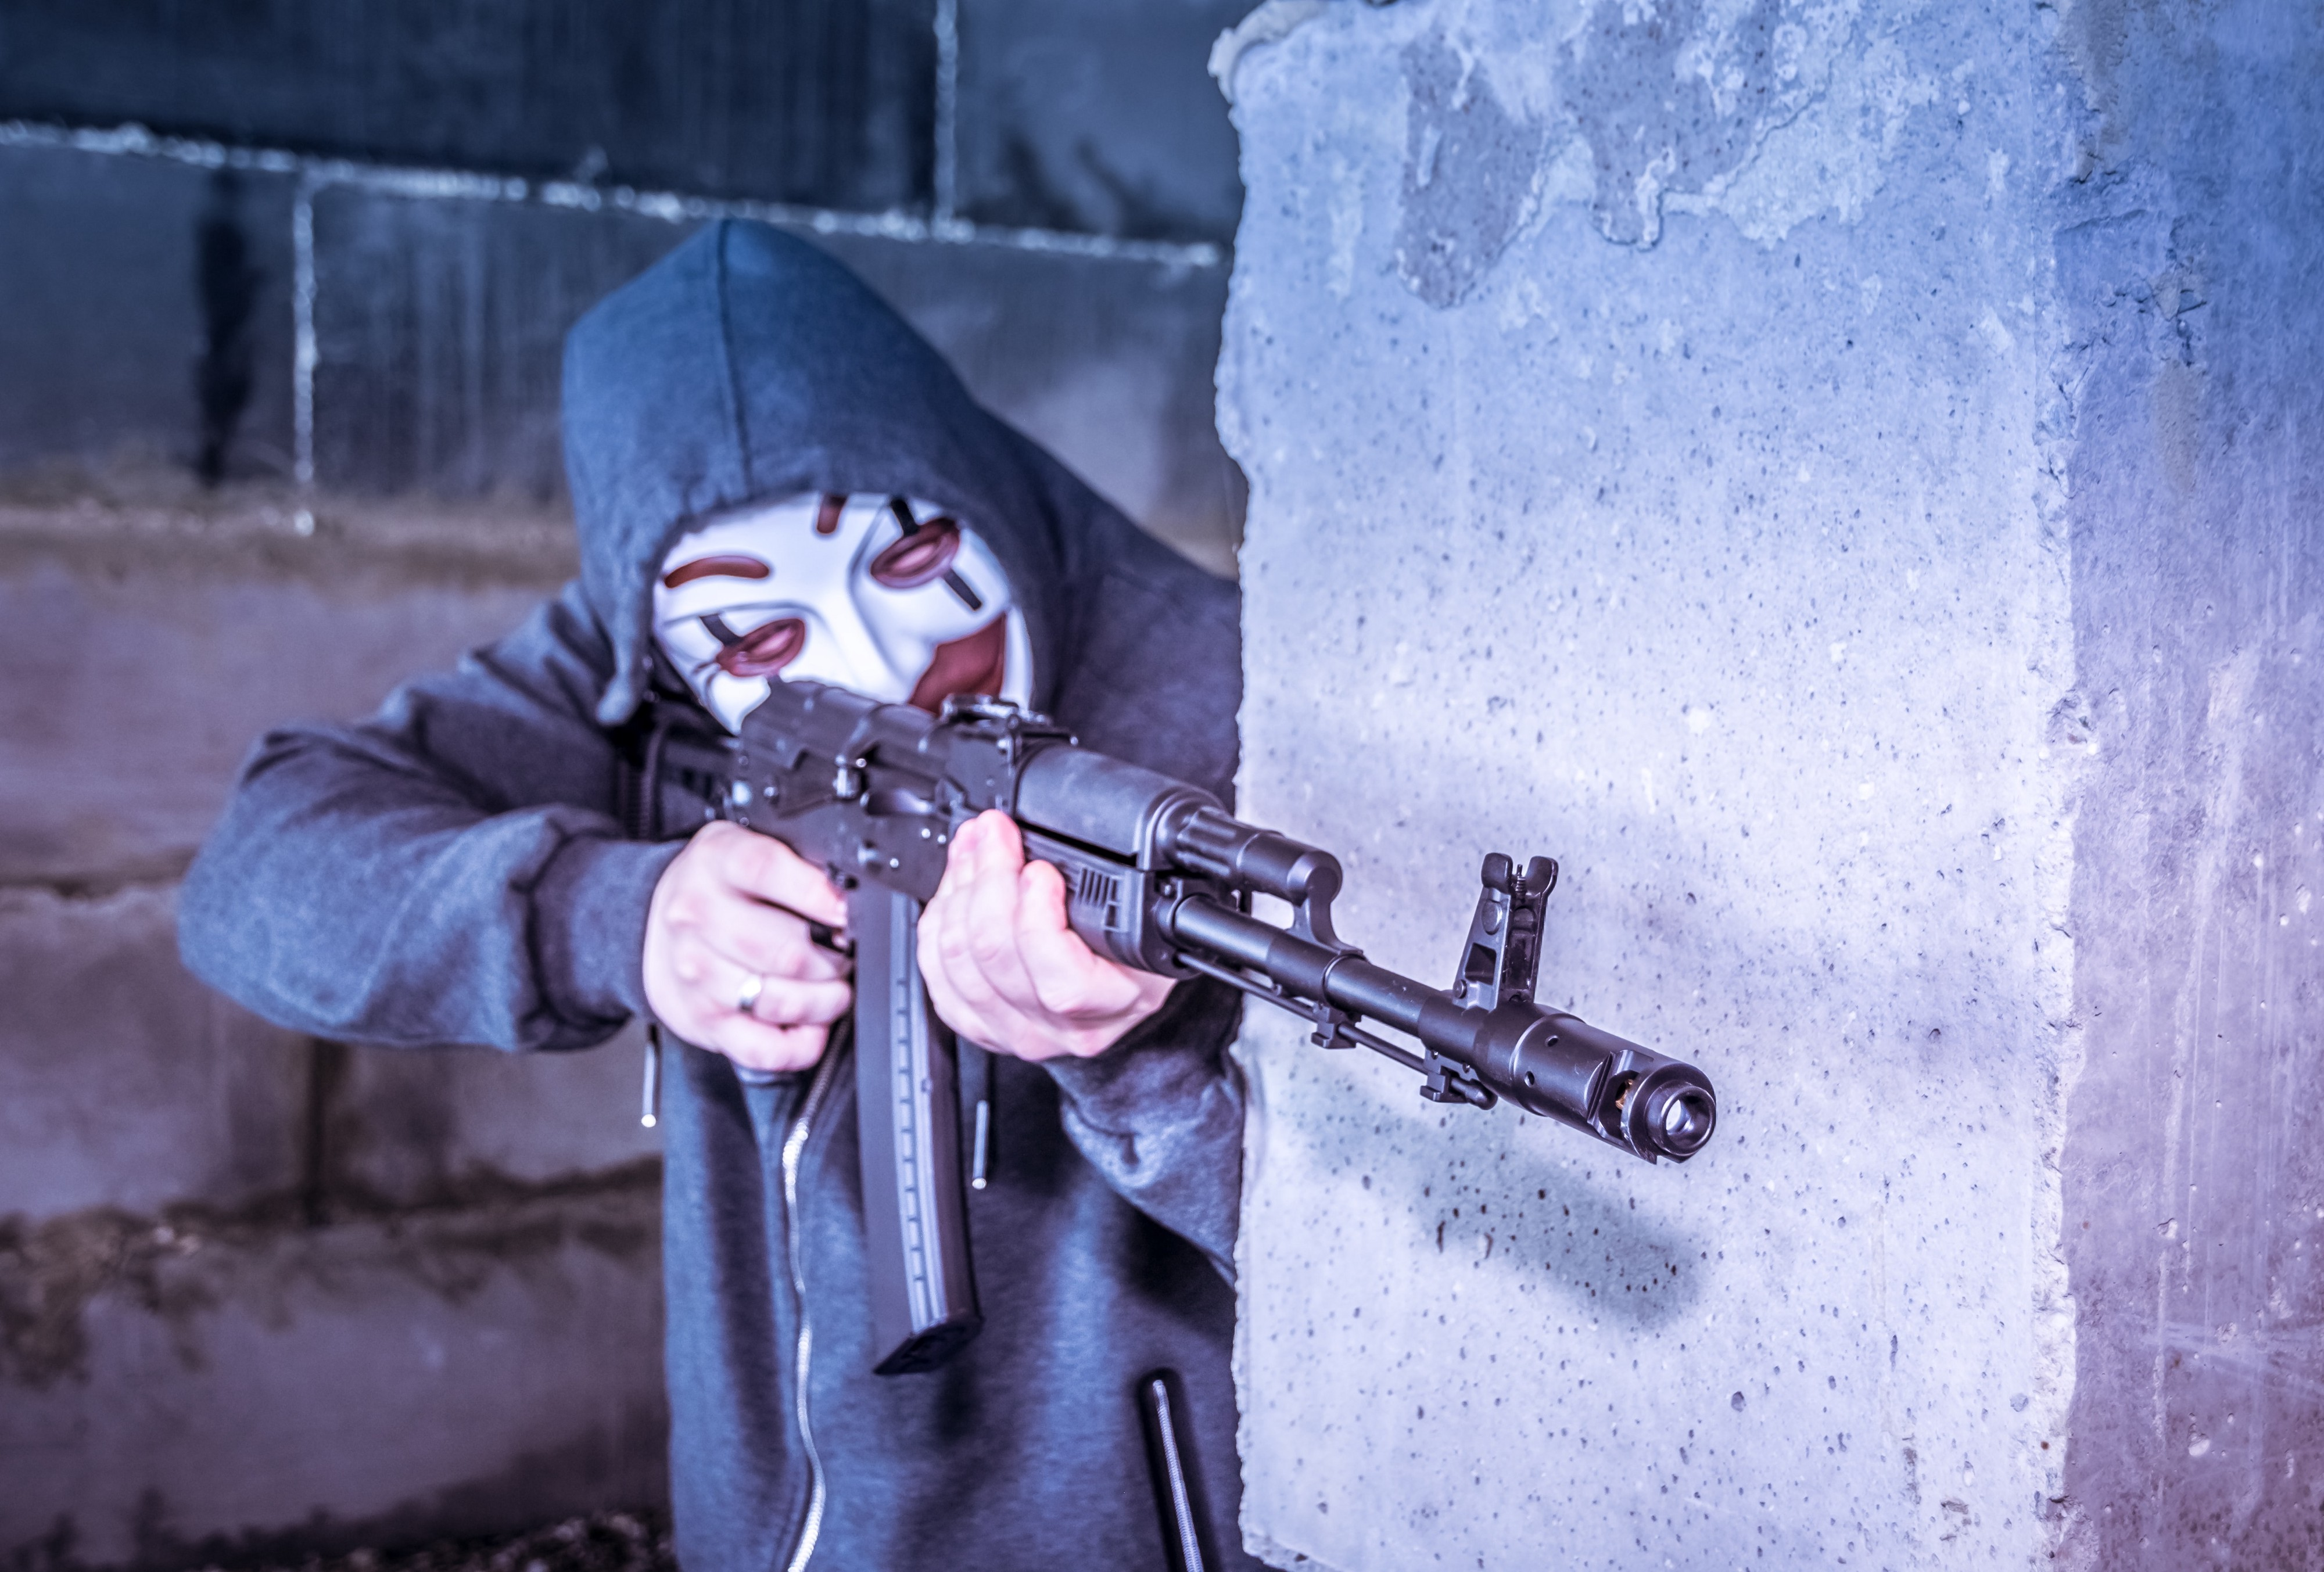 Man in joker mask aiming for gun shot from behind a wall.